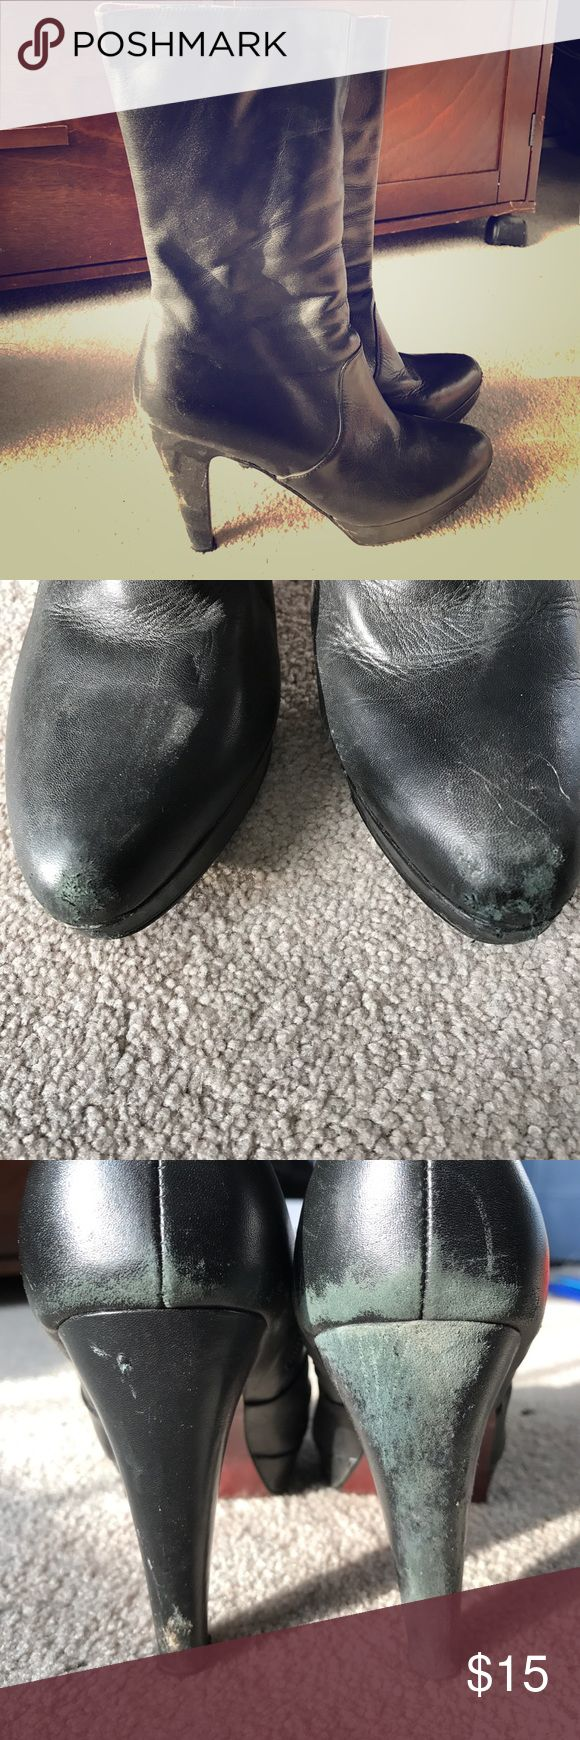 Colin Stuart size 8 Black Boots Black Colin Stuart boots, signs of wear on heel and toes. Very comfortable and well-loved. Colin Stuart Shoes Heeled Boots